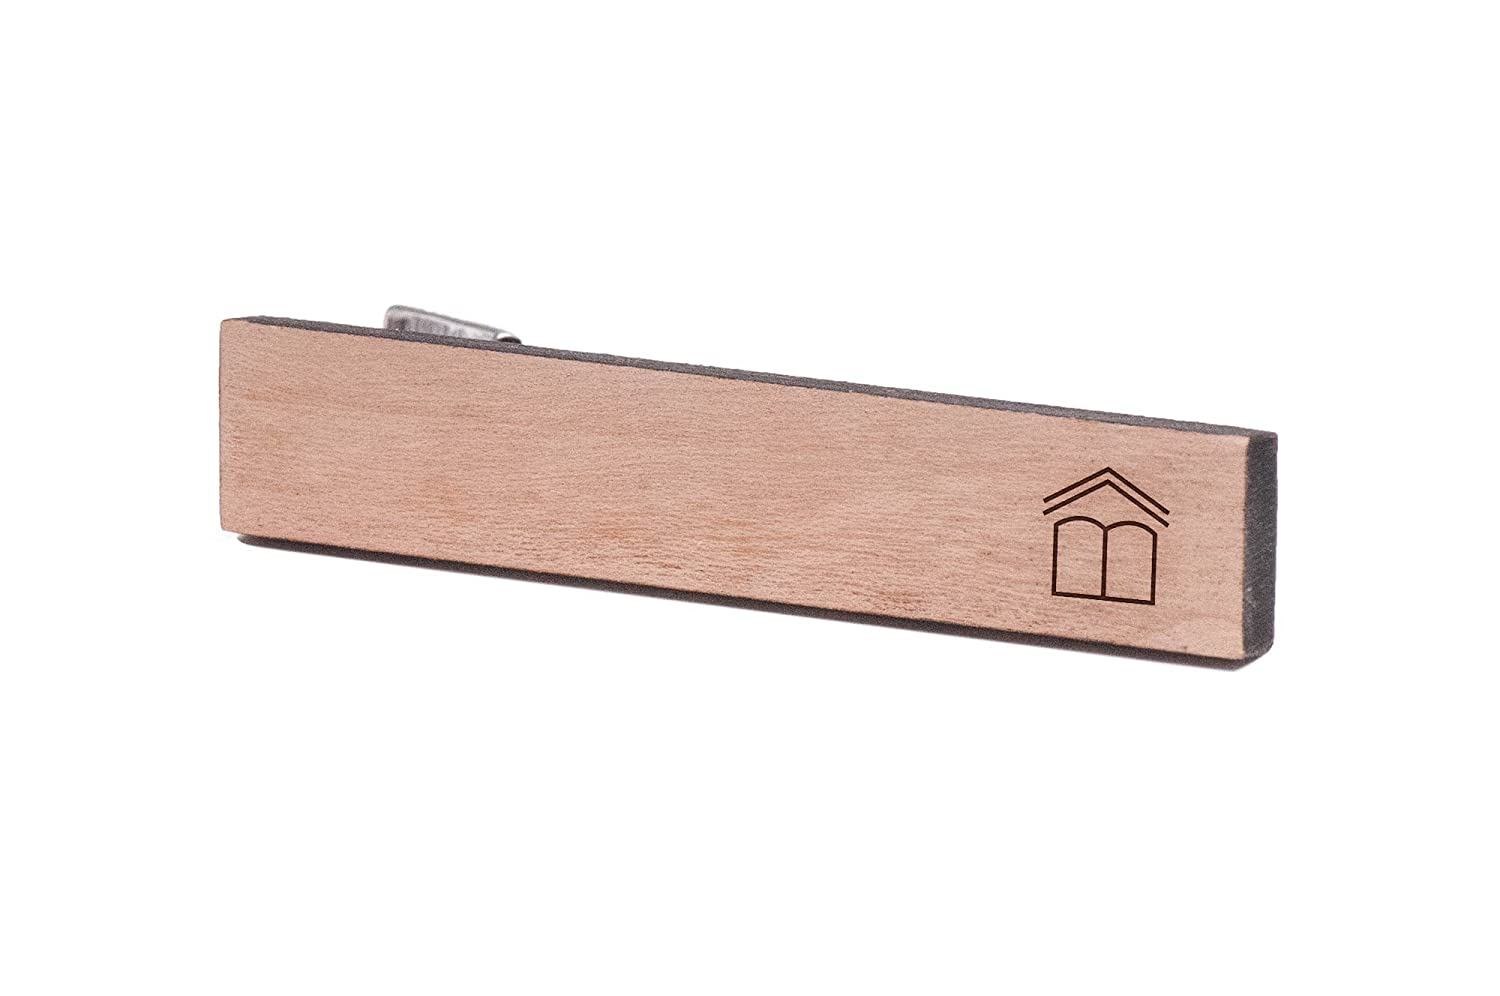 Wooden Accessories Company Wooden Tie Clips with Laser Engraved Learning Book Design Cherry Wood Tie Bar Engraved in The USA